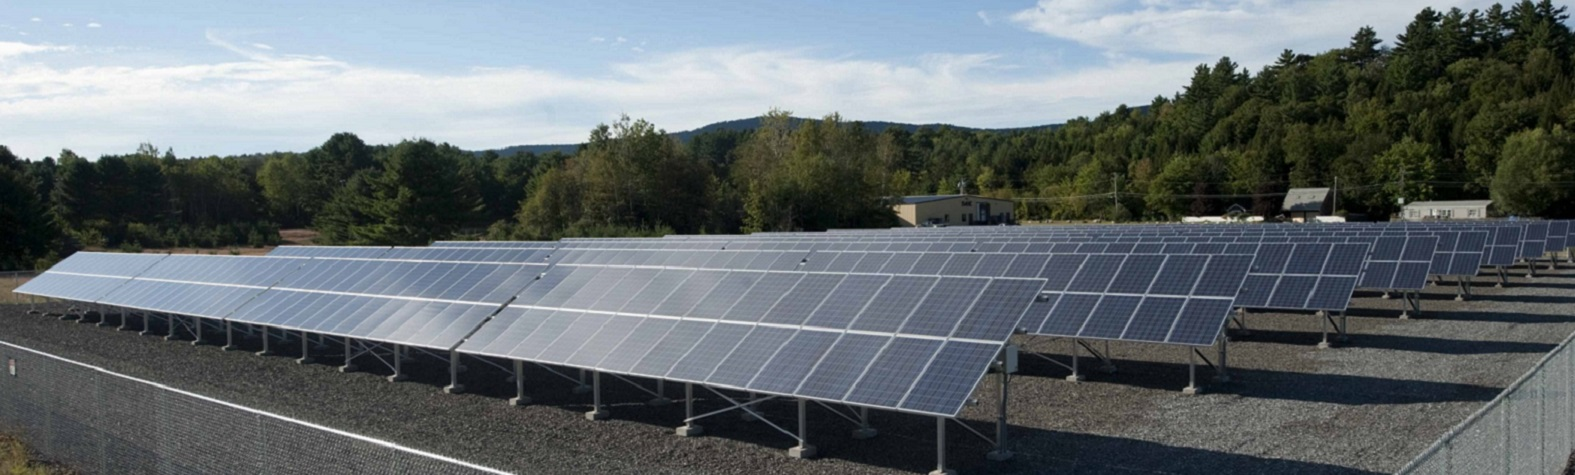 Solar Panels used to Power IVEK's facility